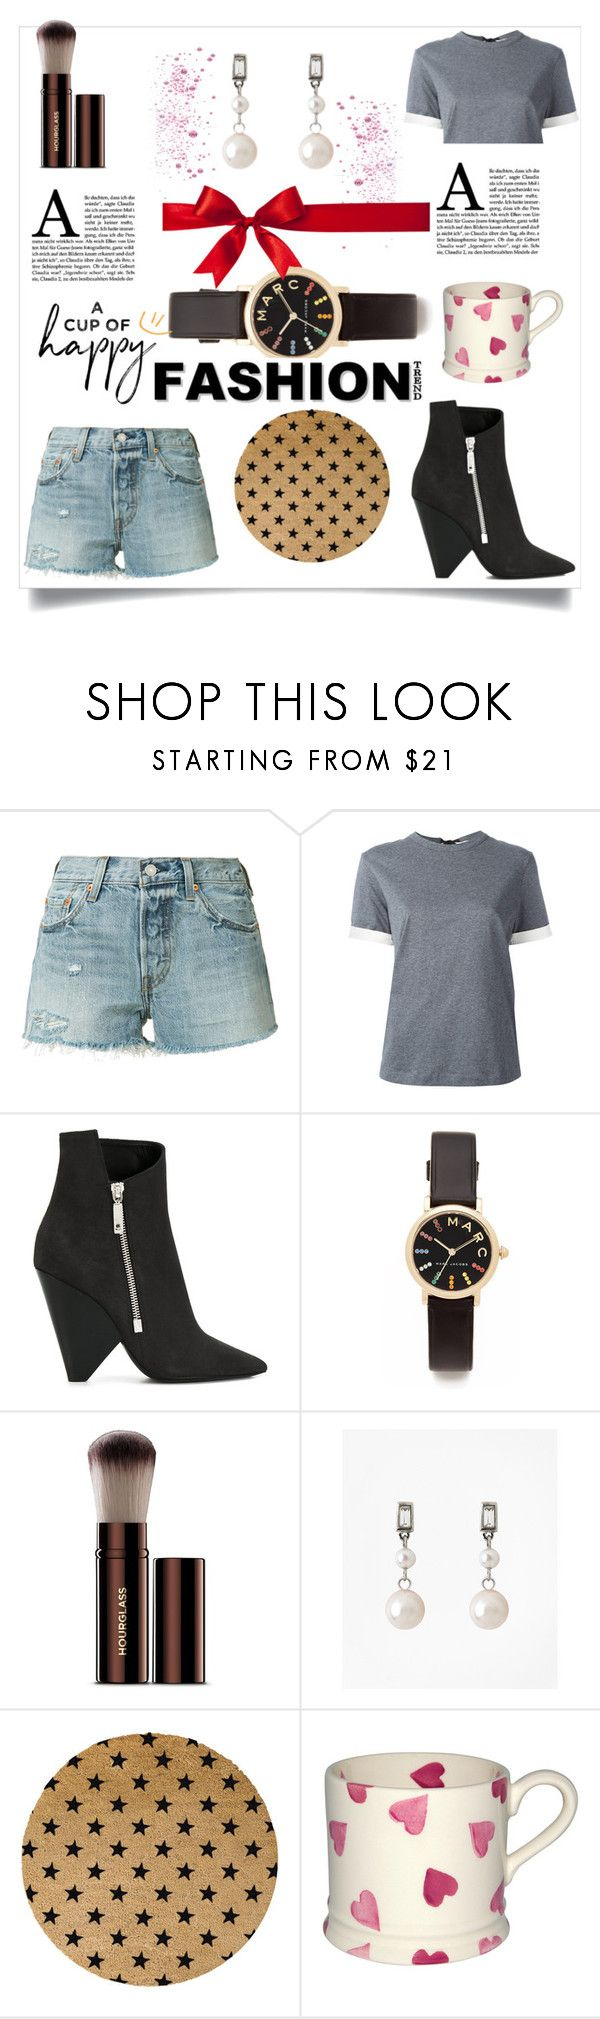 """Fab Style"" by hillarymaguire ❤ liked on Polyvore featuring Levi's, Marni, Yves Saint Laurent, Marc Jacobs, Hourglass Cosmetics, Brooks Brothers, Artsy Doormats, Boots, watch and earrings"